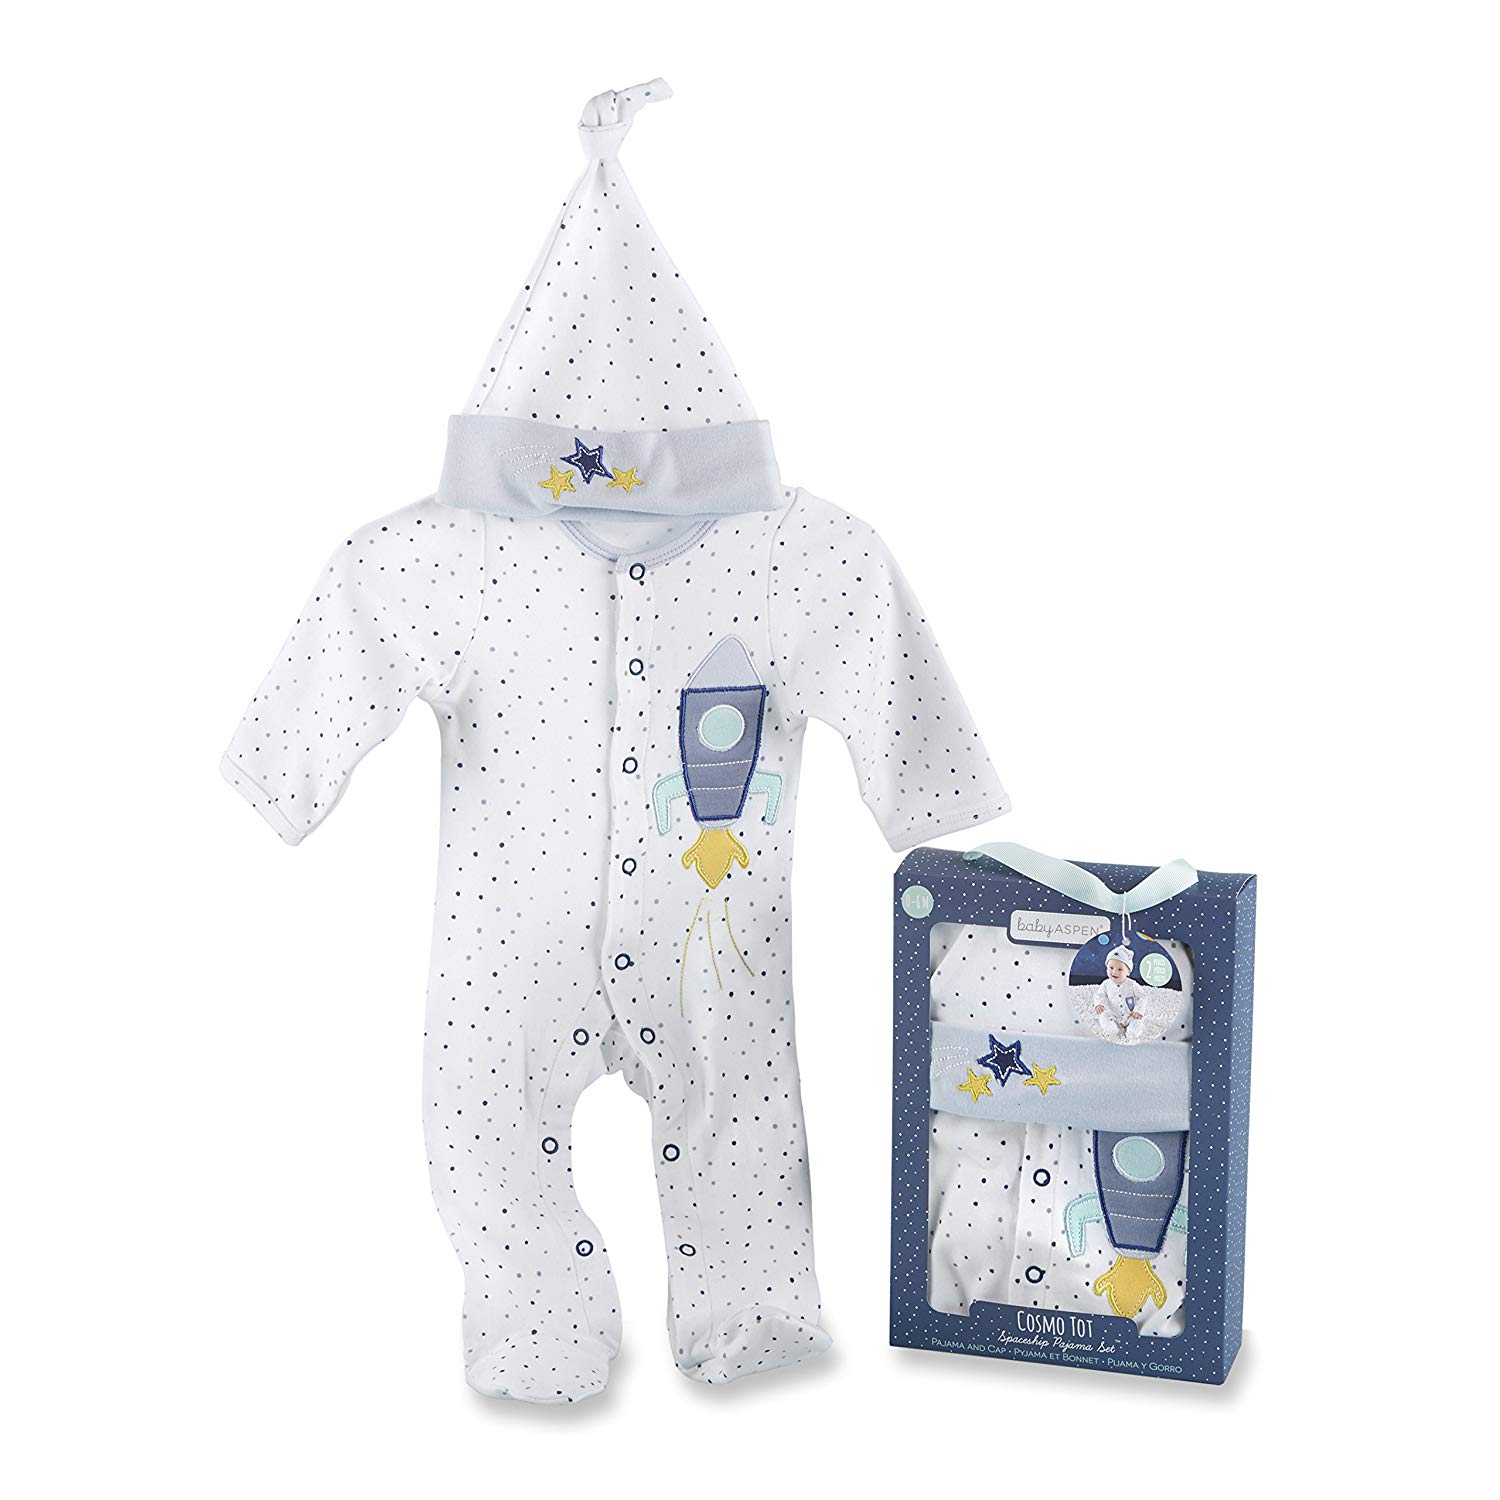 Baby Aspen Cosmo TOT Spaceship Gift Set, White/Blue/Yellow/Mint, 2 Piece, Pajama, 0-6 Months